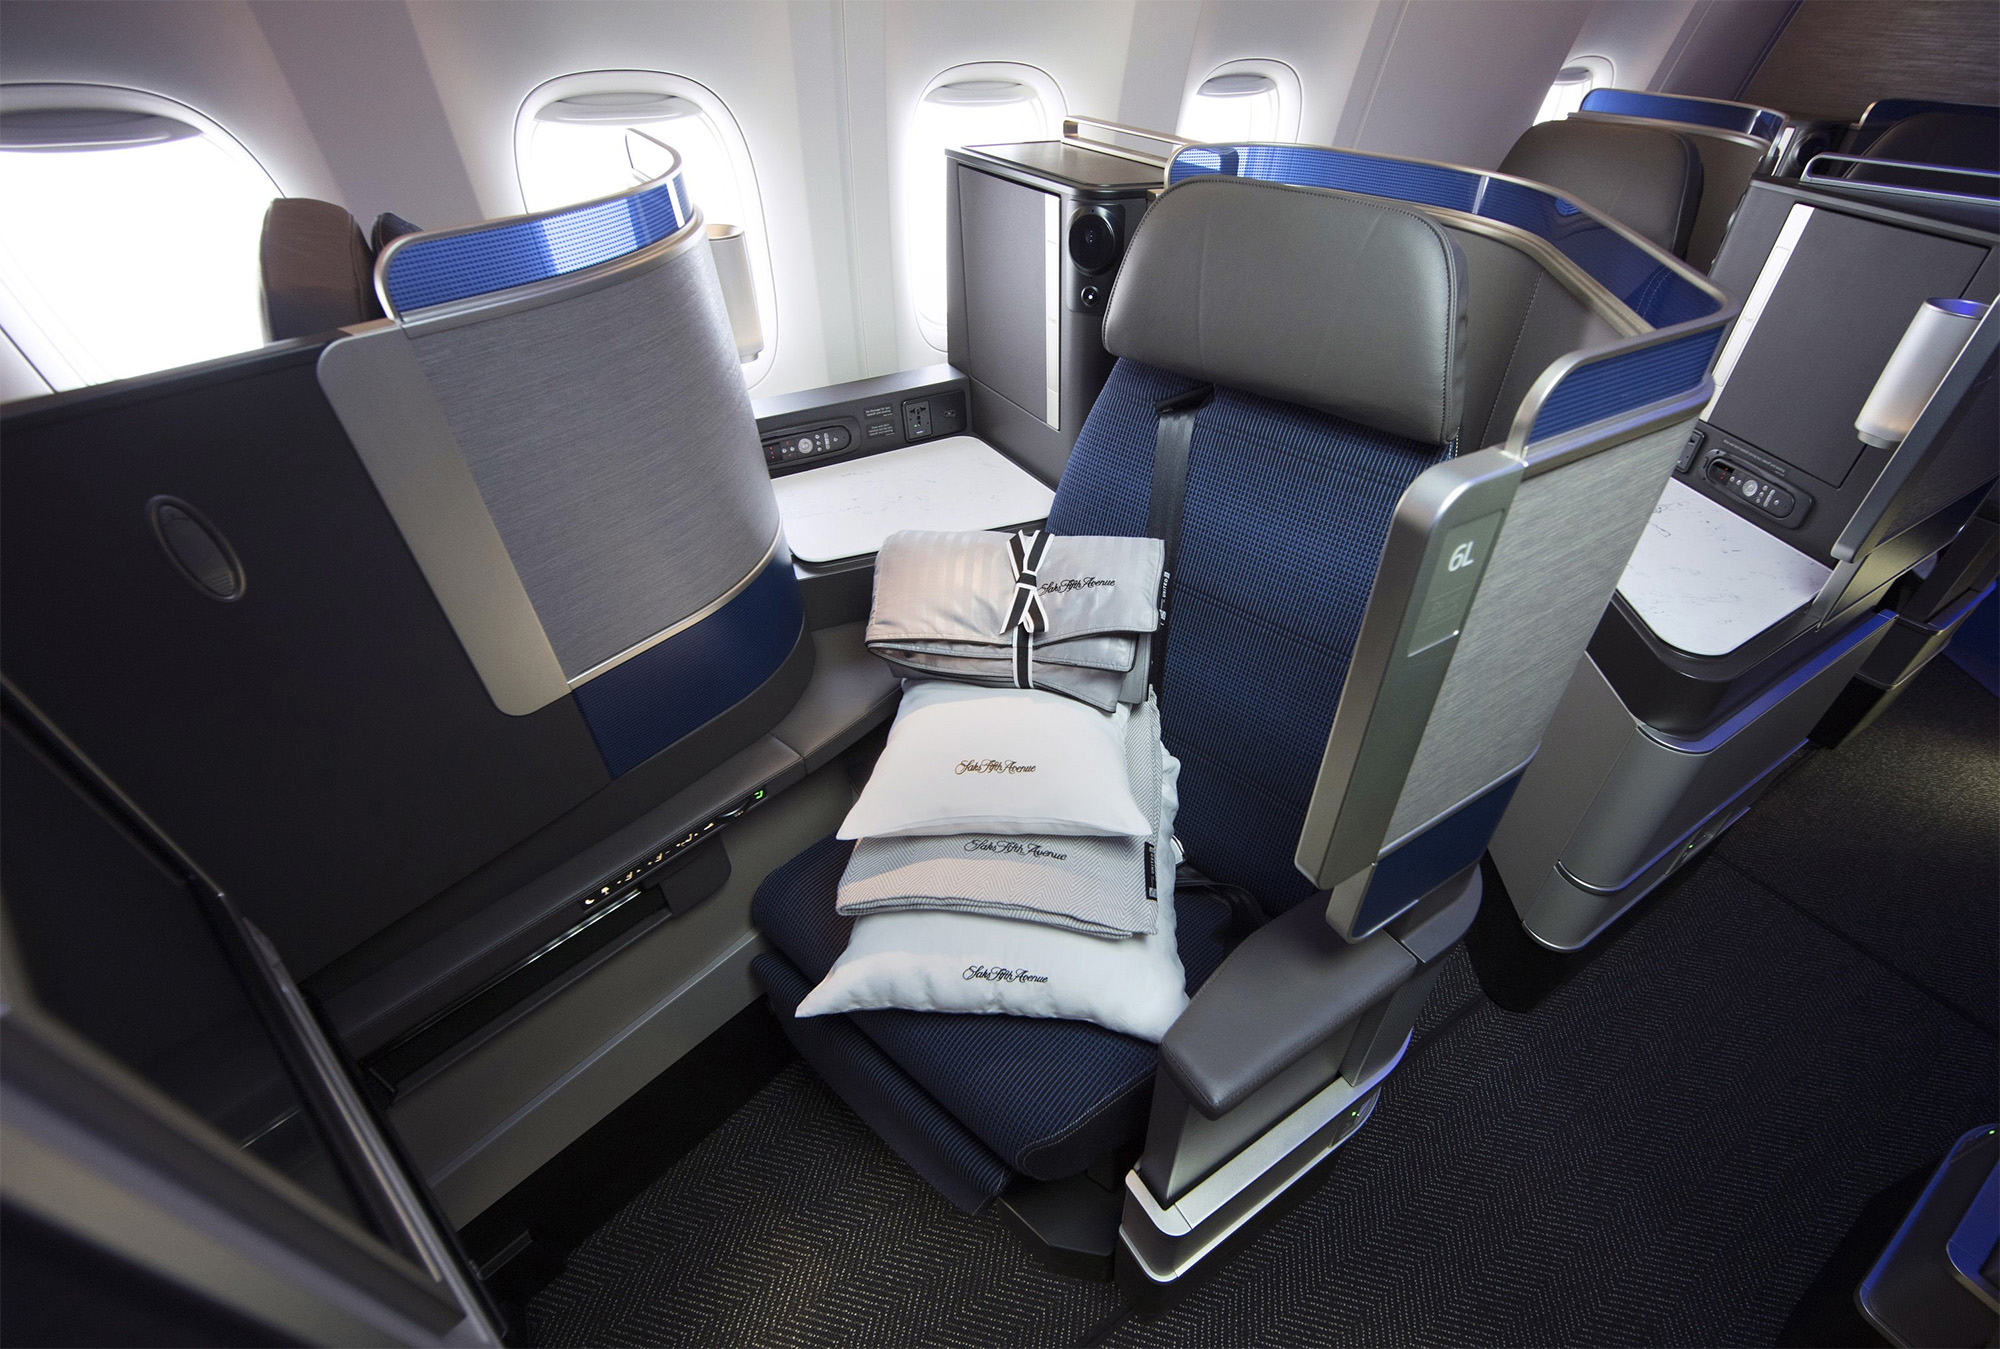 United Polaris Seat (United Airlines)